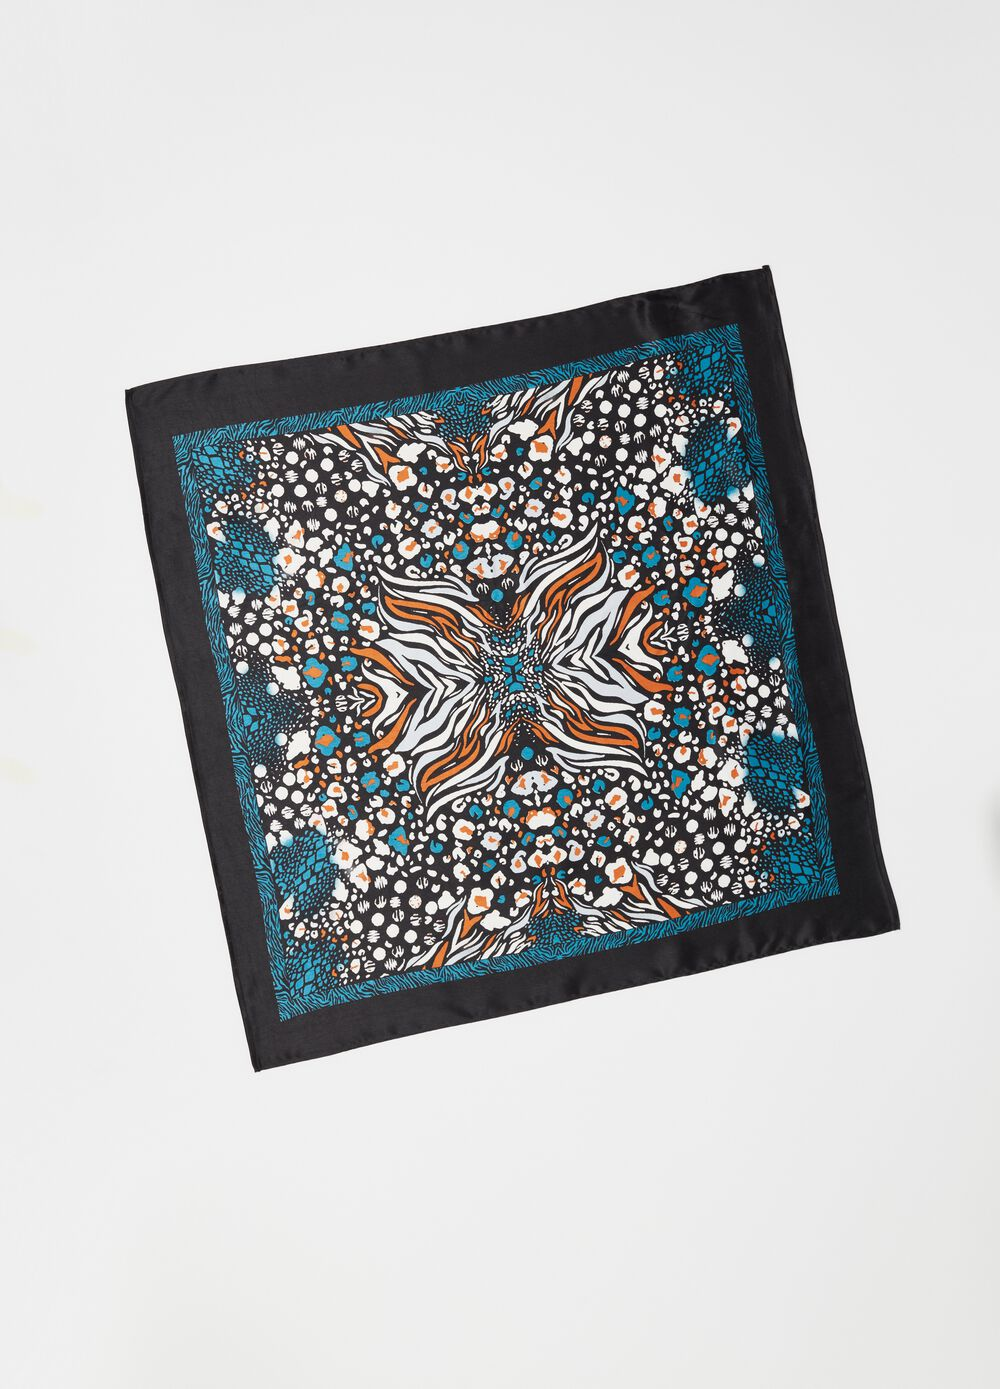 Foulard with Arabesque animal print pattern